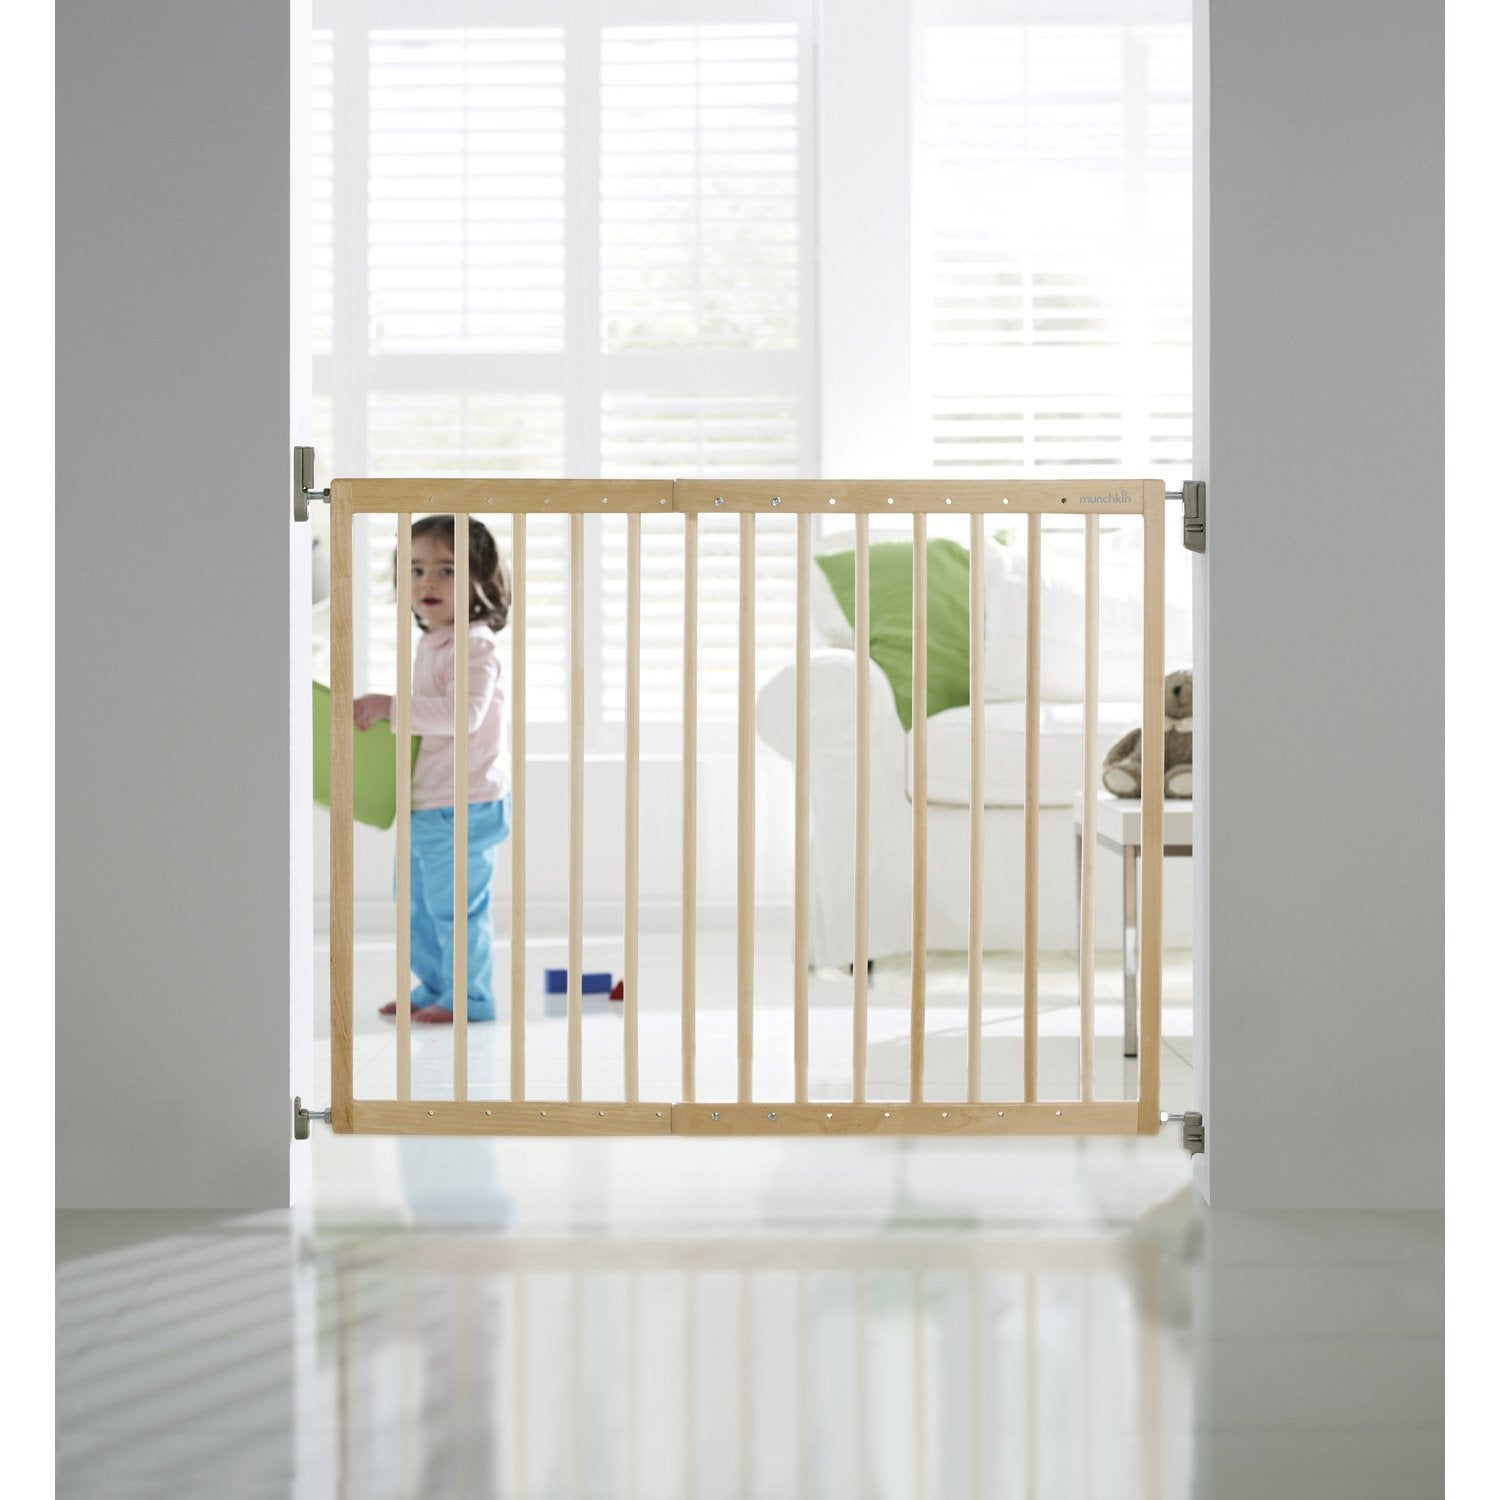 Barri re de s curit enfant munchkin bois cm - Barriere de securite escalier sans vis ...